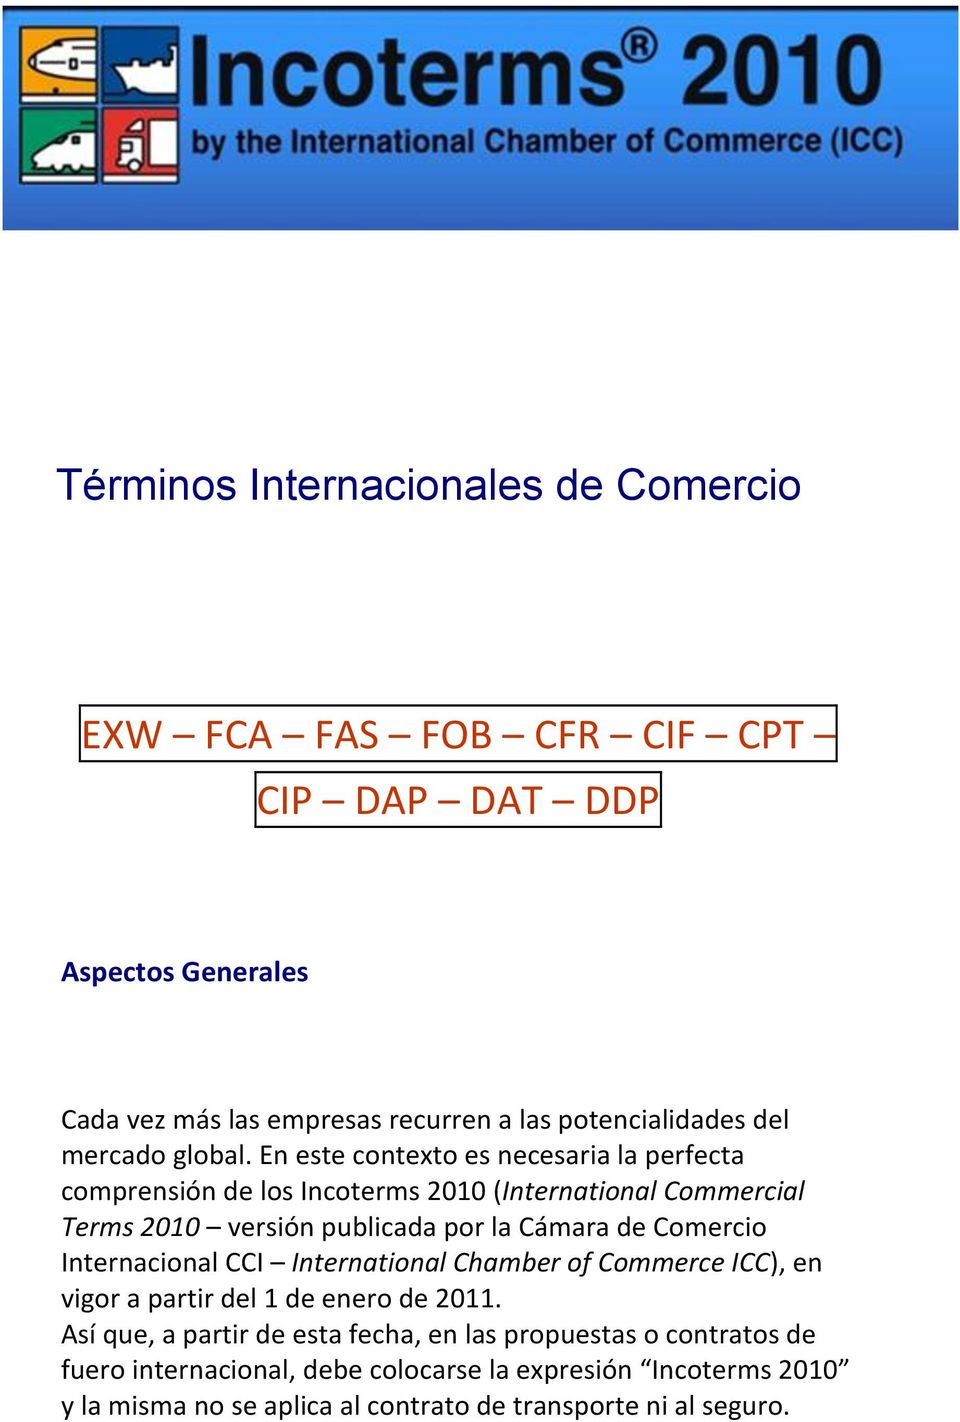 enestecontextoesnecesarialaperfecta comprensióndelosincoterms2010(international*commercial* Terms*2010